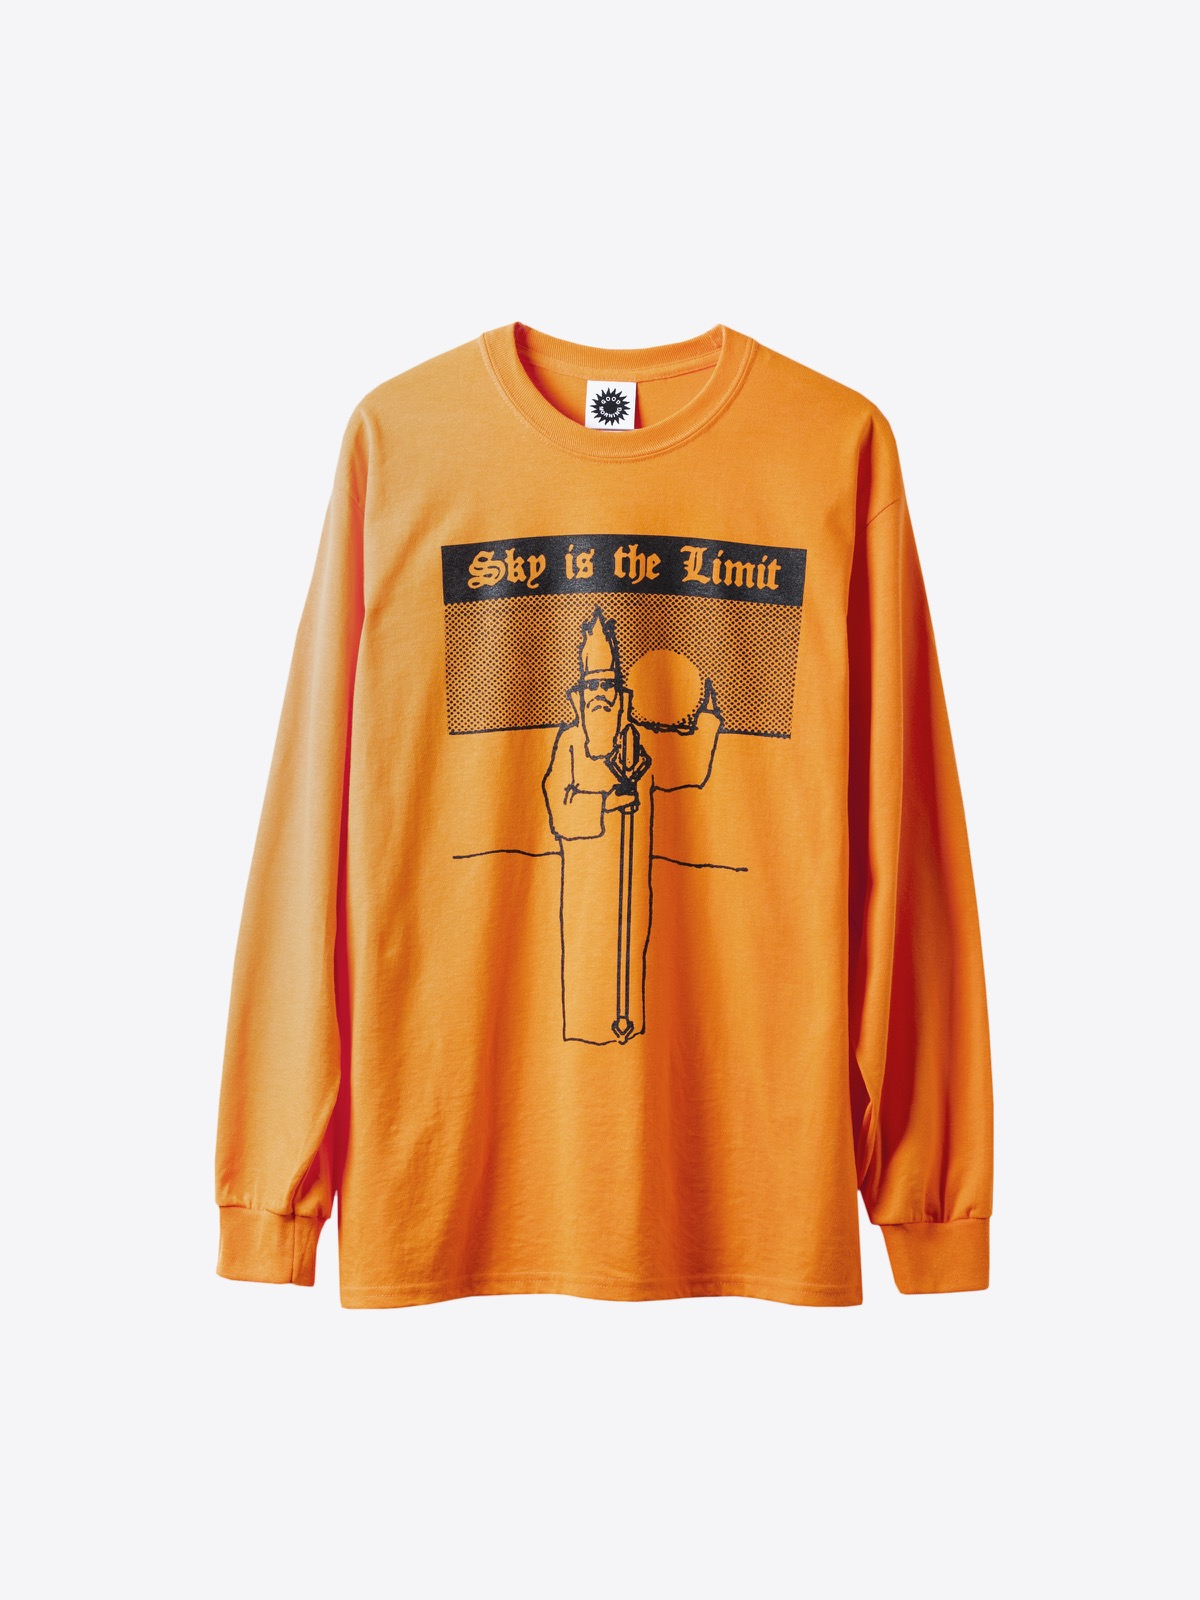 airbag craftworks good morning tapes | SKY IS THE LIMIT LS TEE - BRIGHT ORANGE